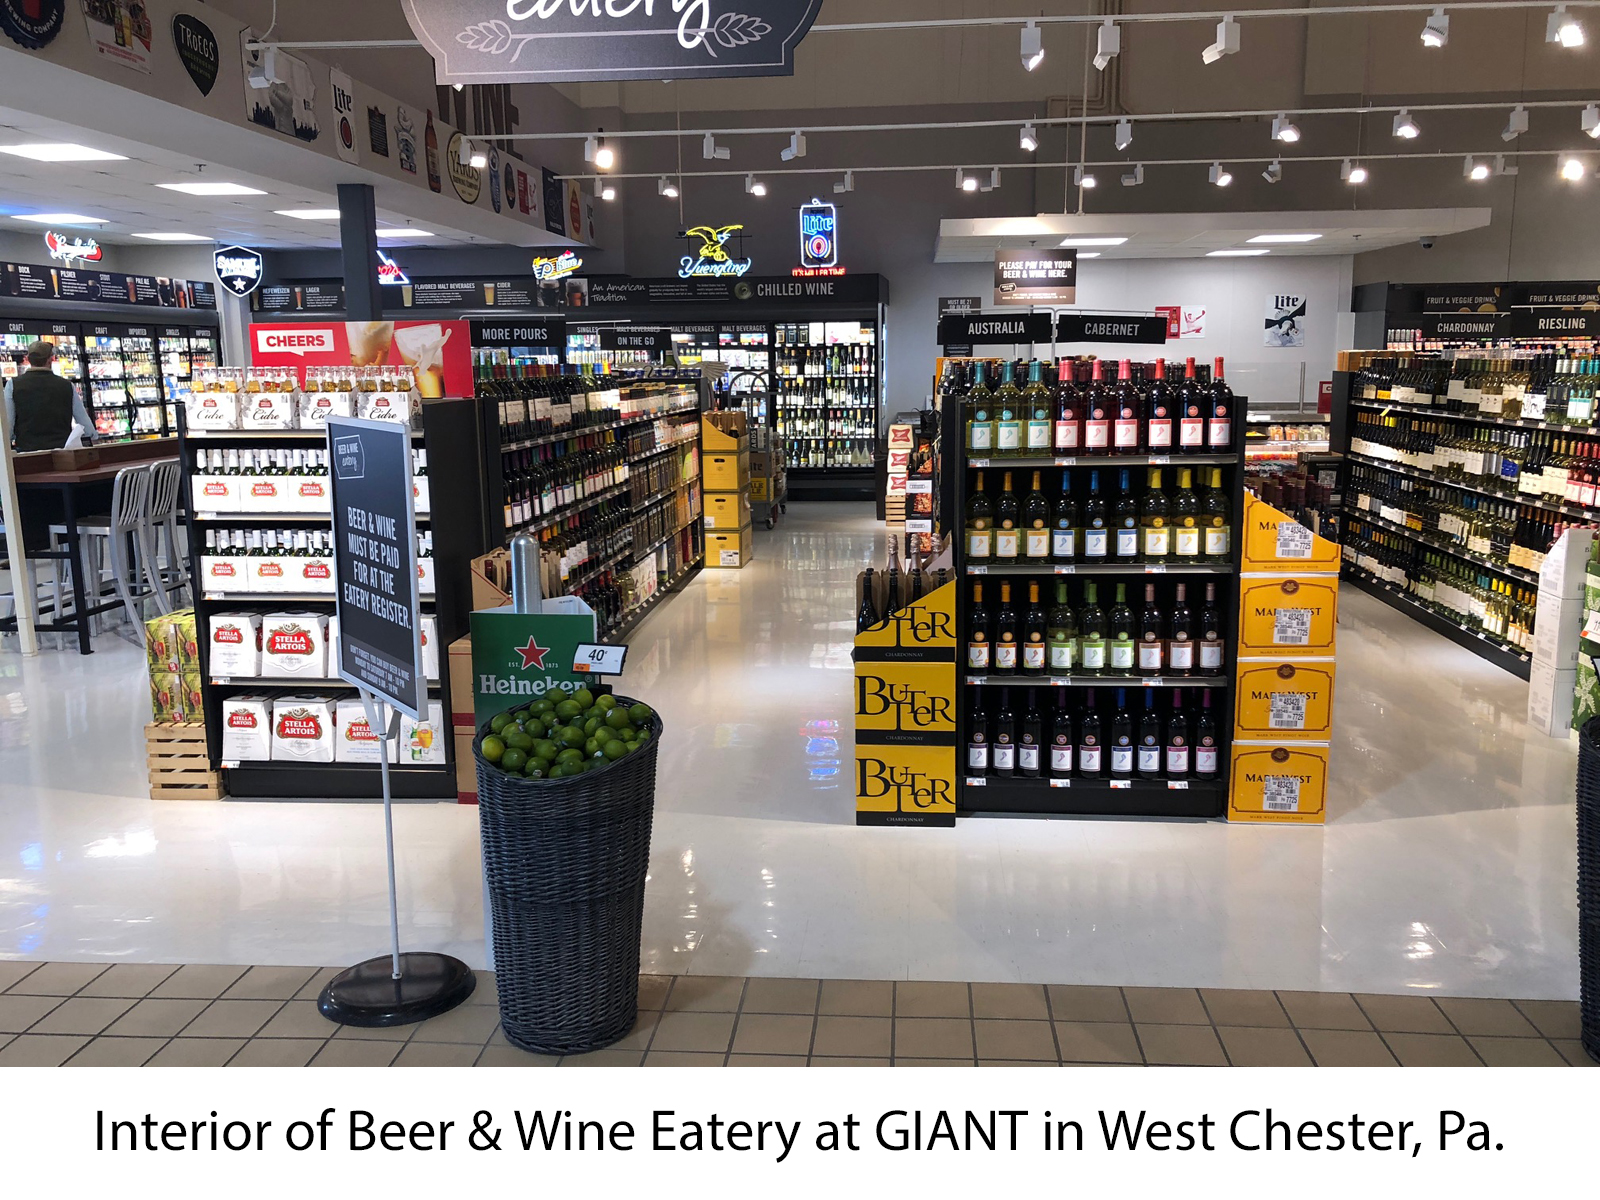 Giant Opens Beer Wine Eatery At West Chester Pa Store Caryl